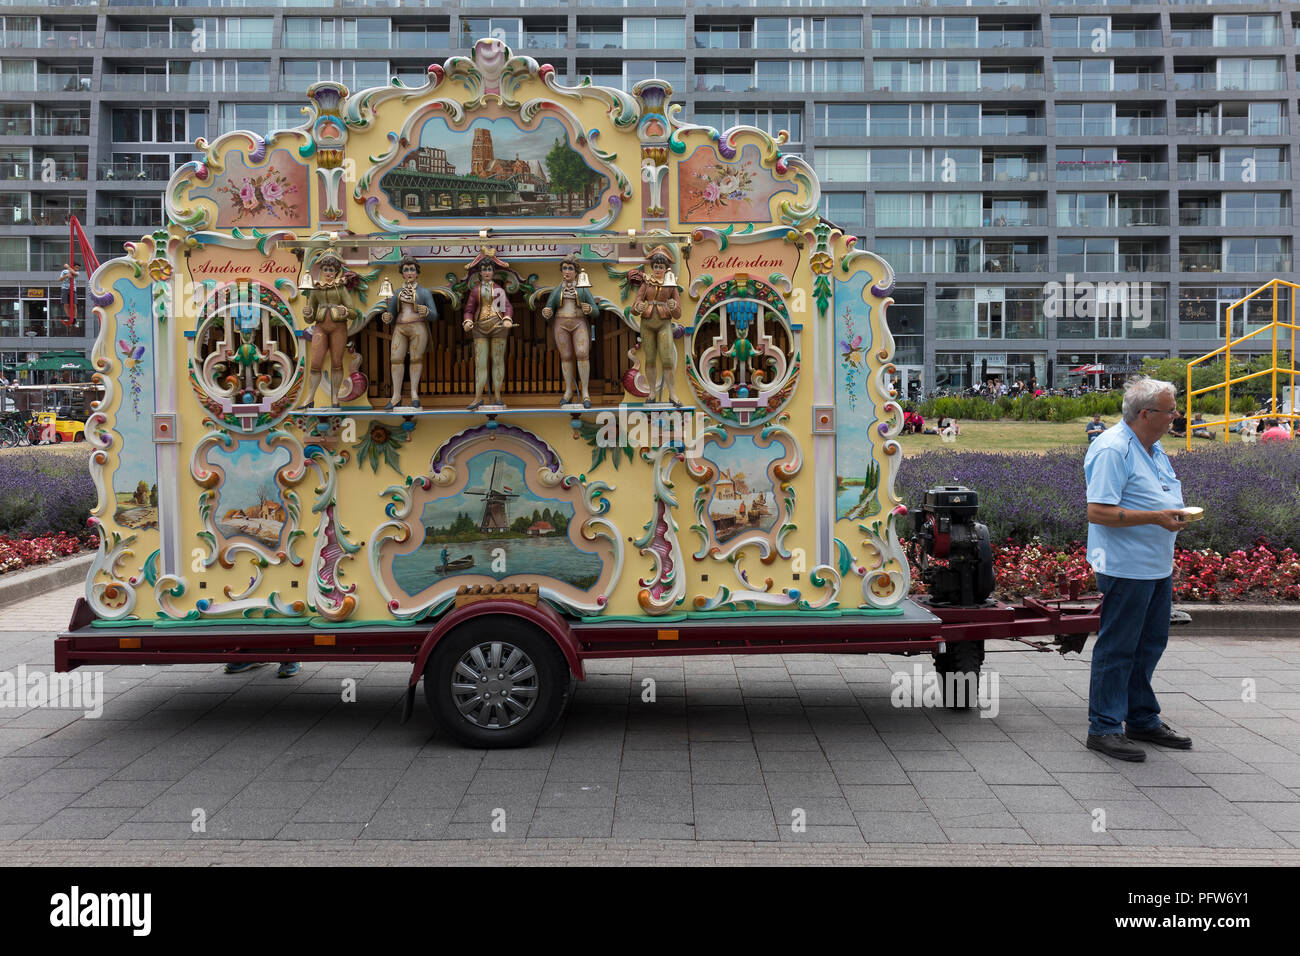 Rotterdam, Netherlands - July 7, 2018: Traditional Dutch street barrel organ named Rosalinda in summer in front of apartments - Stock Image